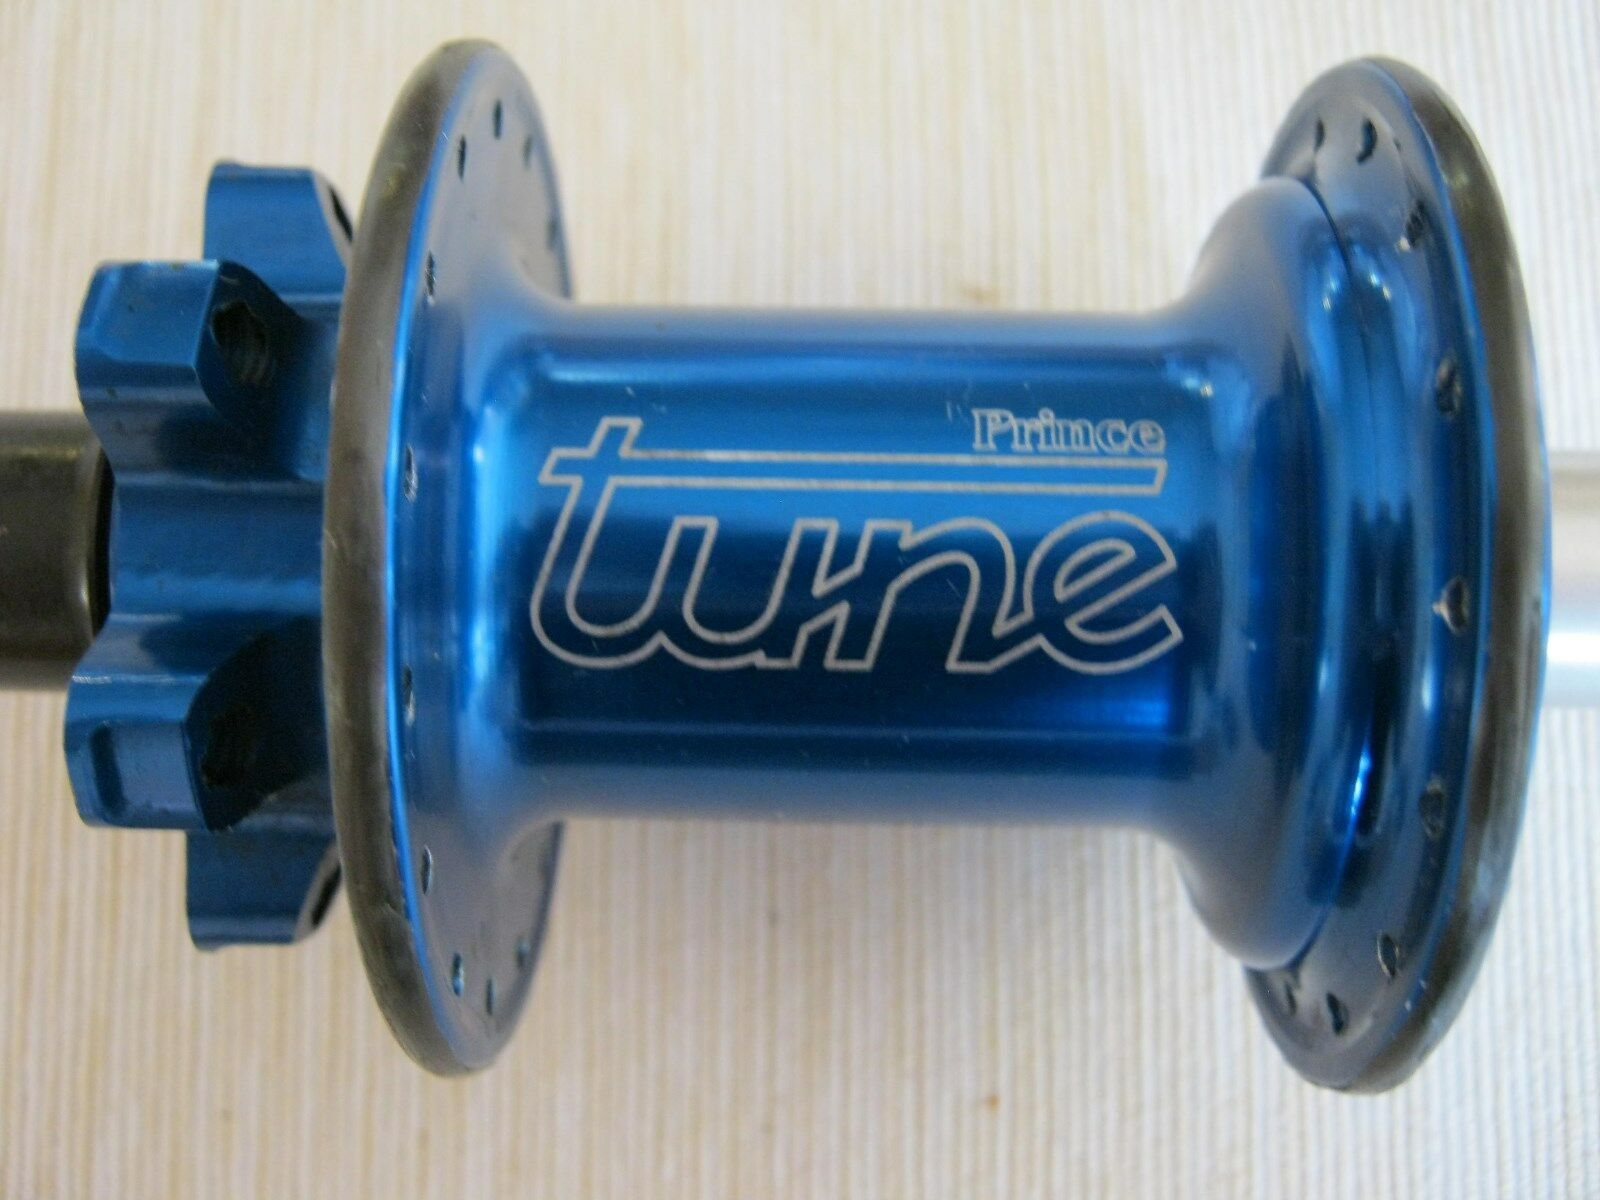 TUNE  PRINCE REAR DISC HUB, 32h, WITHOUT redOR, VGC  save up to 30-50% off